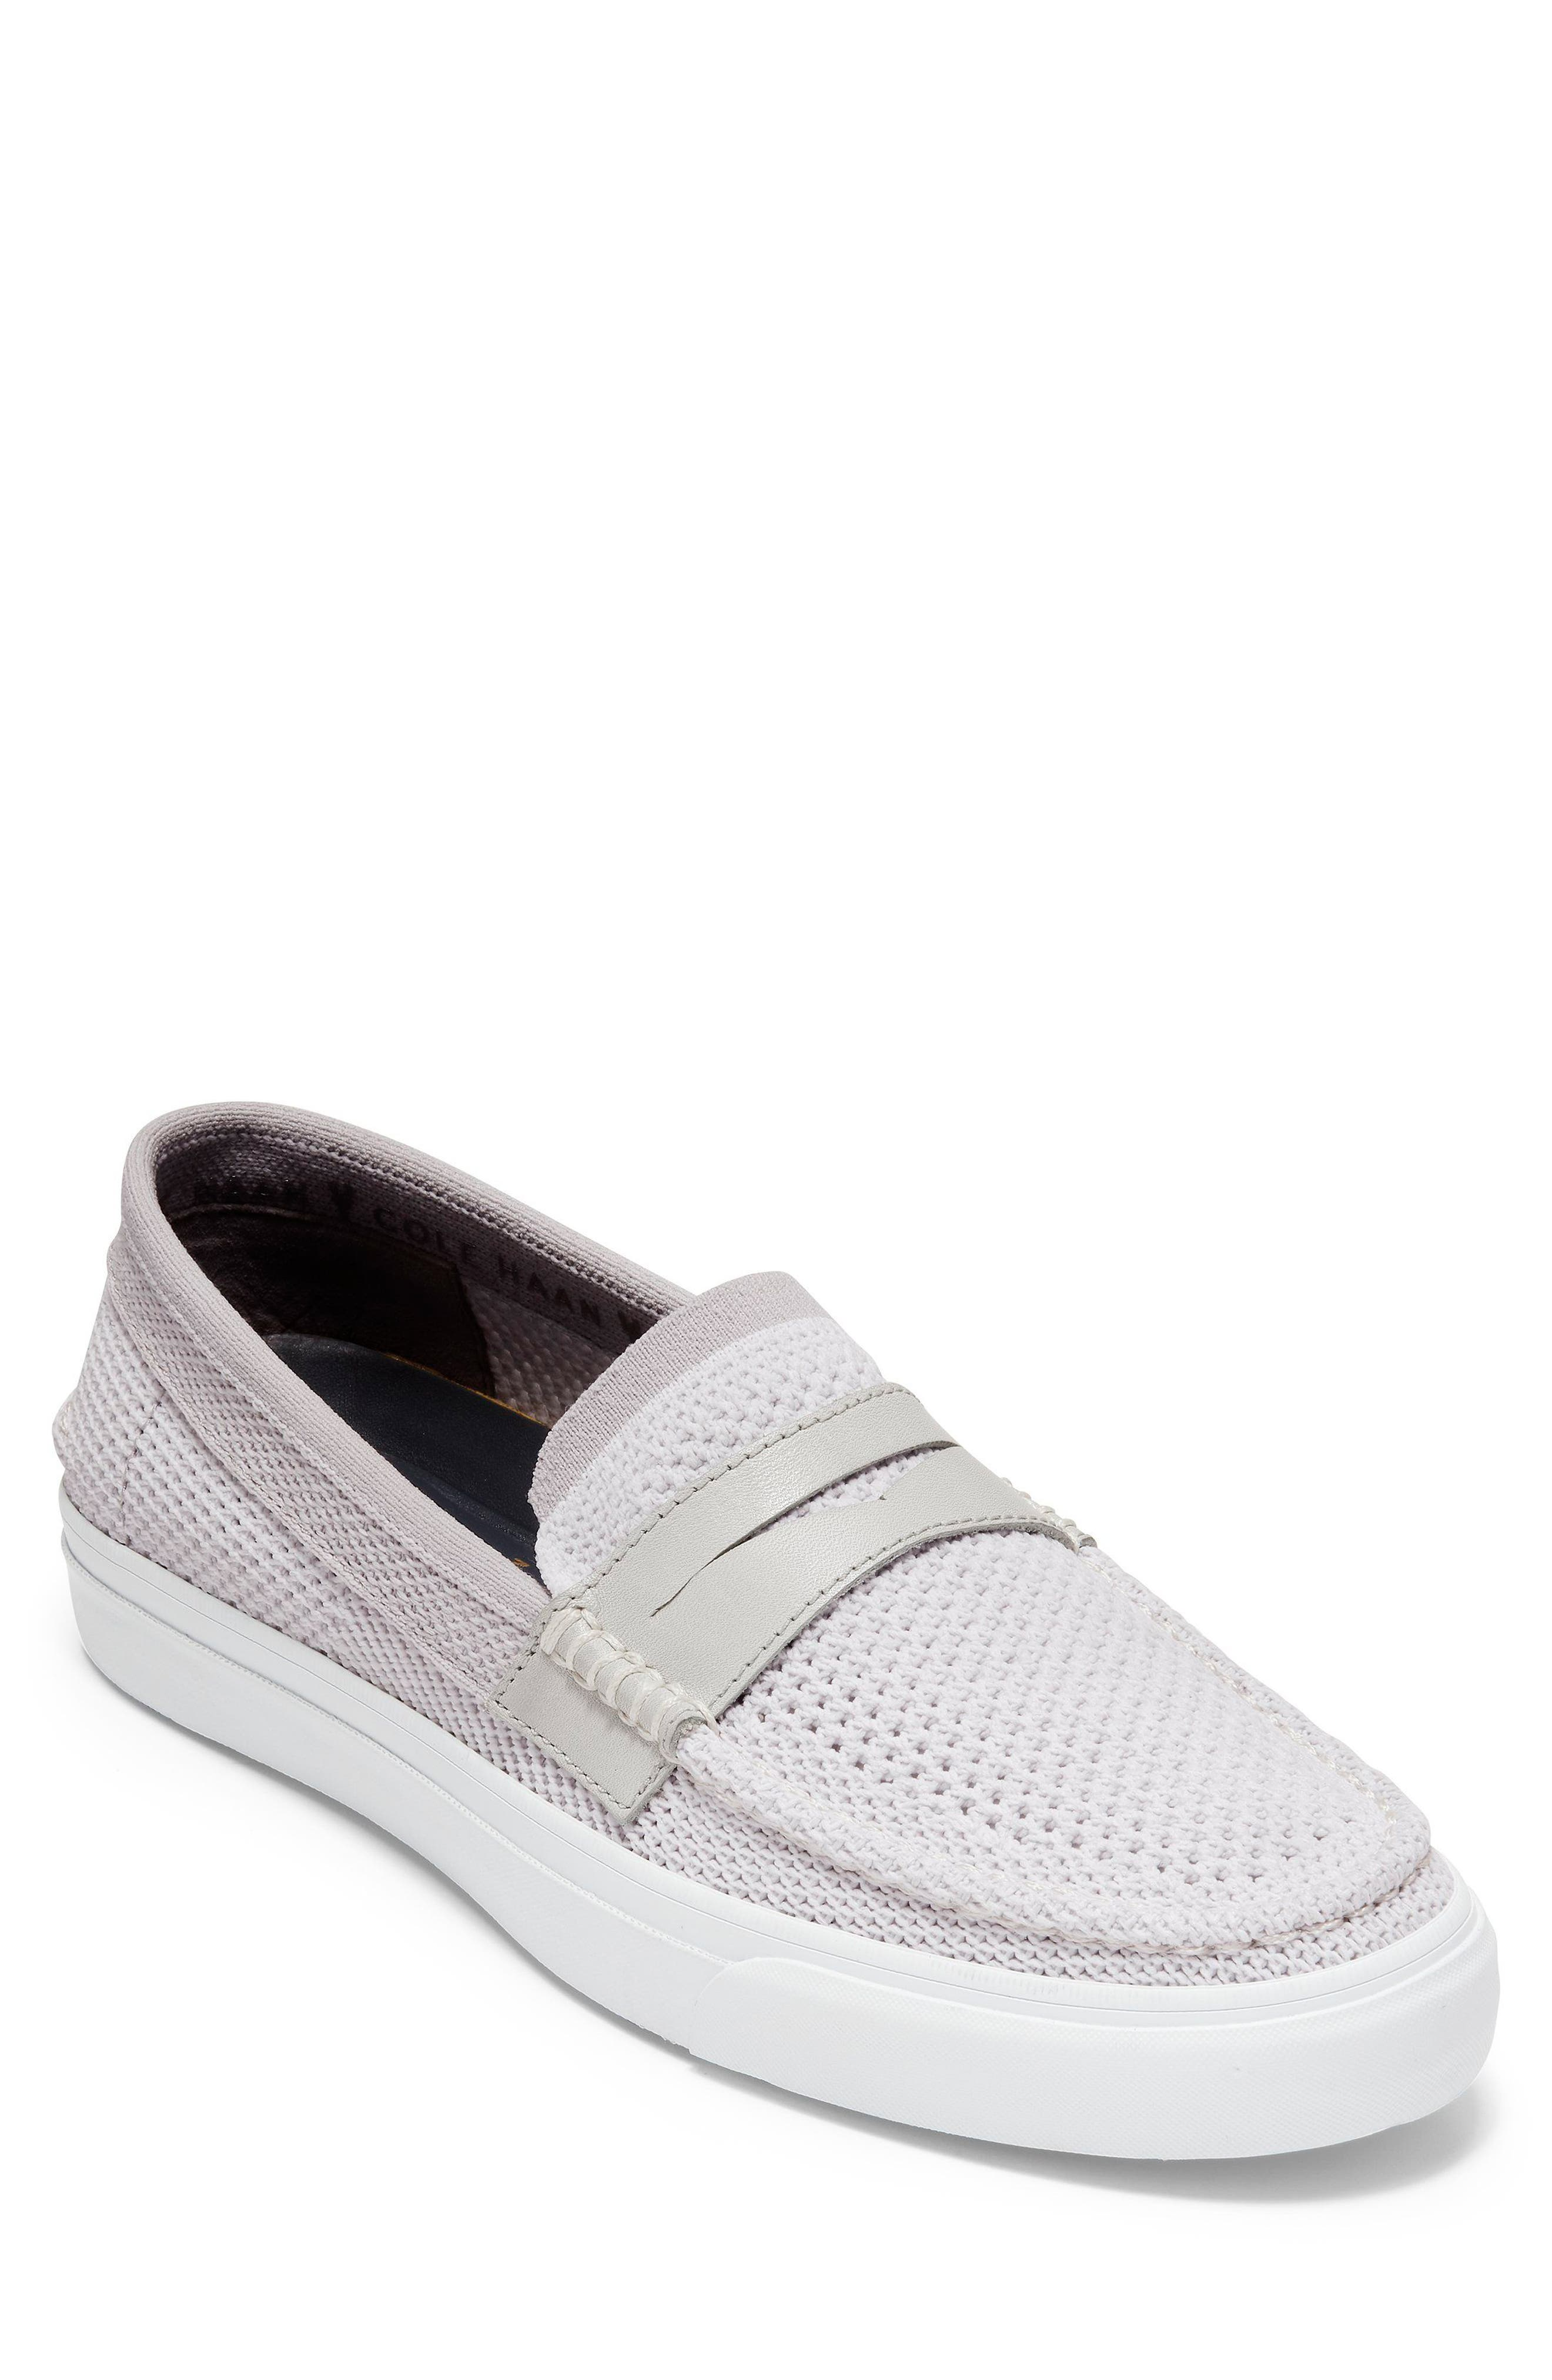 Pinch Stitch LX Stitchlite<sup>™</sup> Penny Loafer,                         Main,                         color, Vapor Grey /Optic White